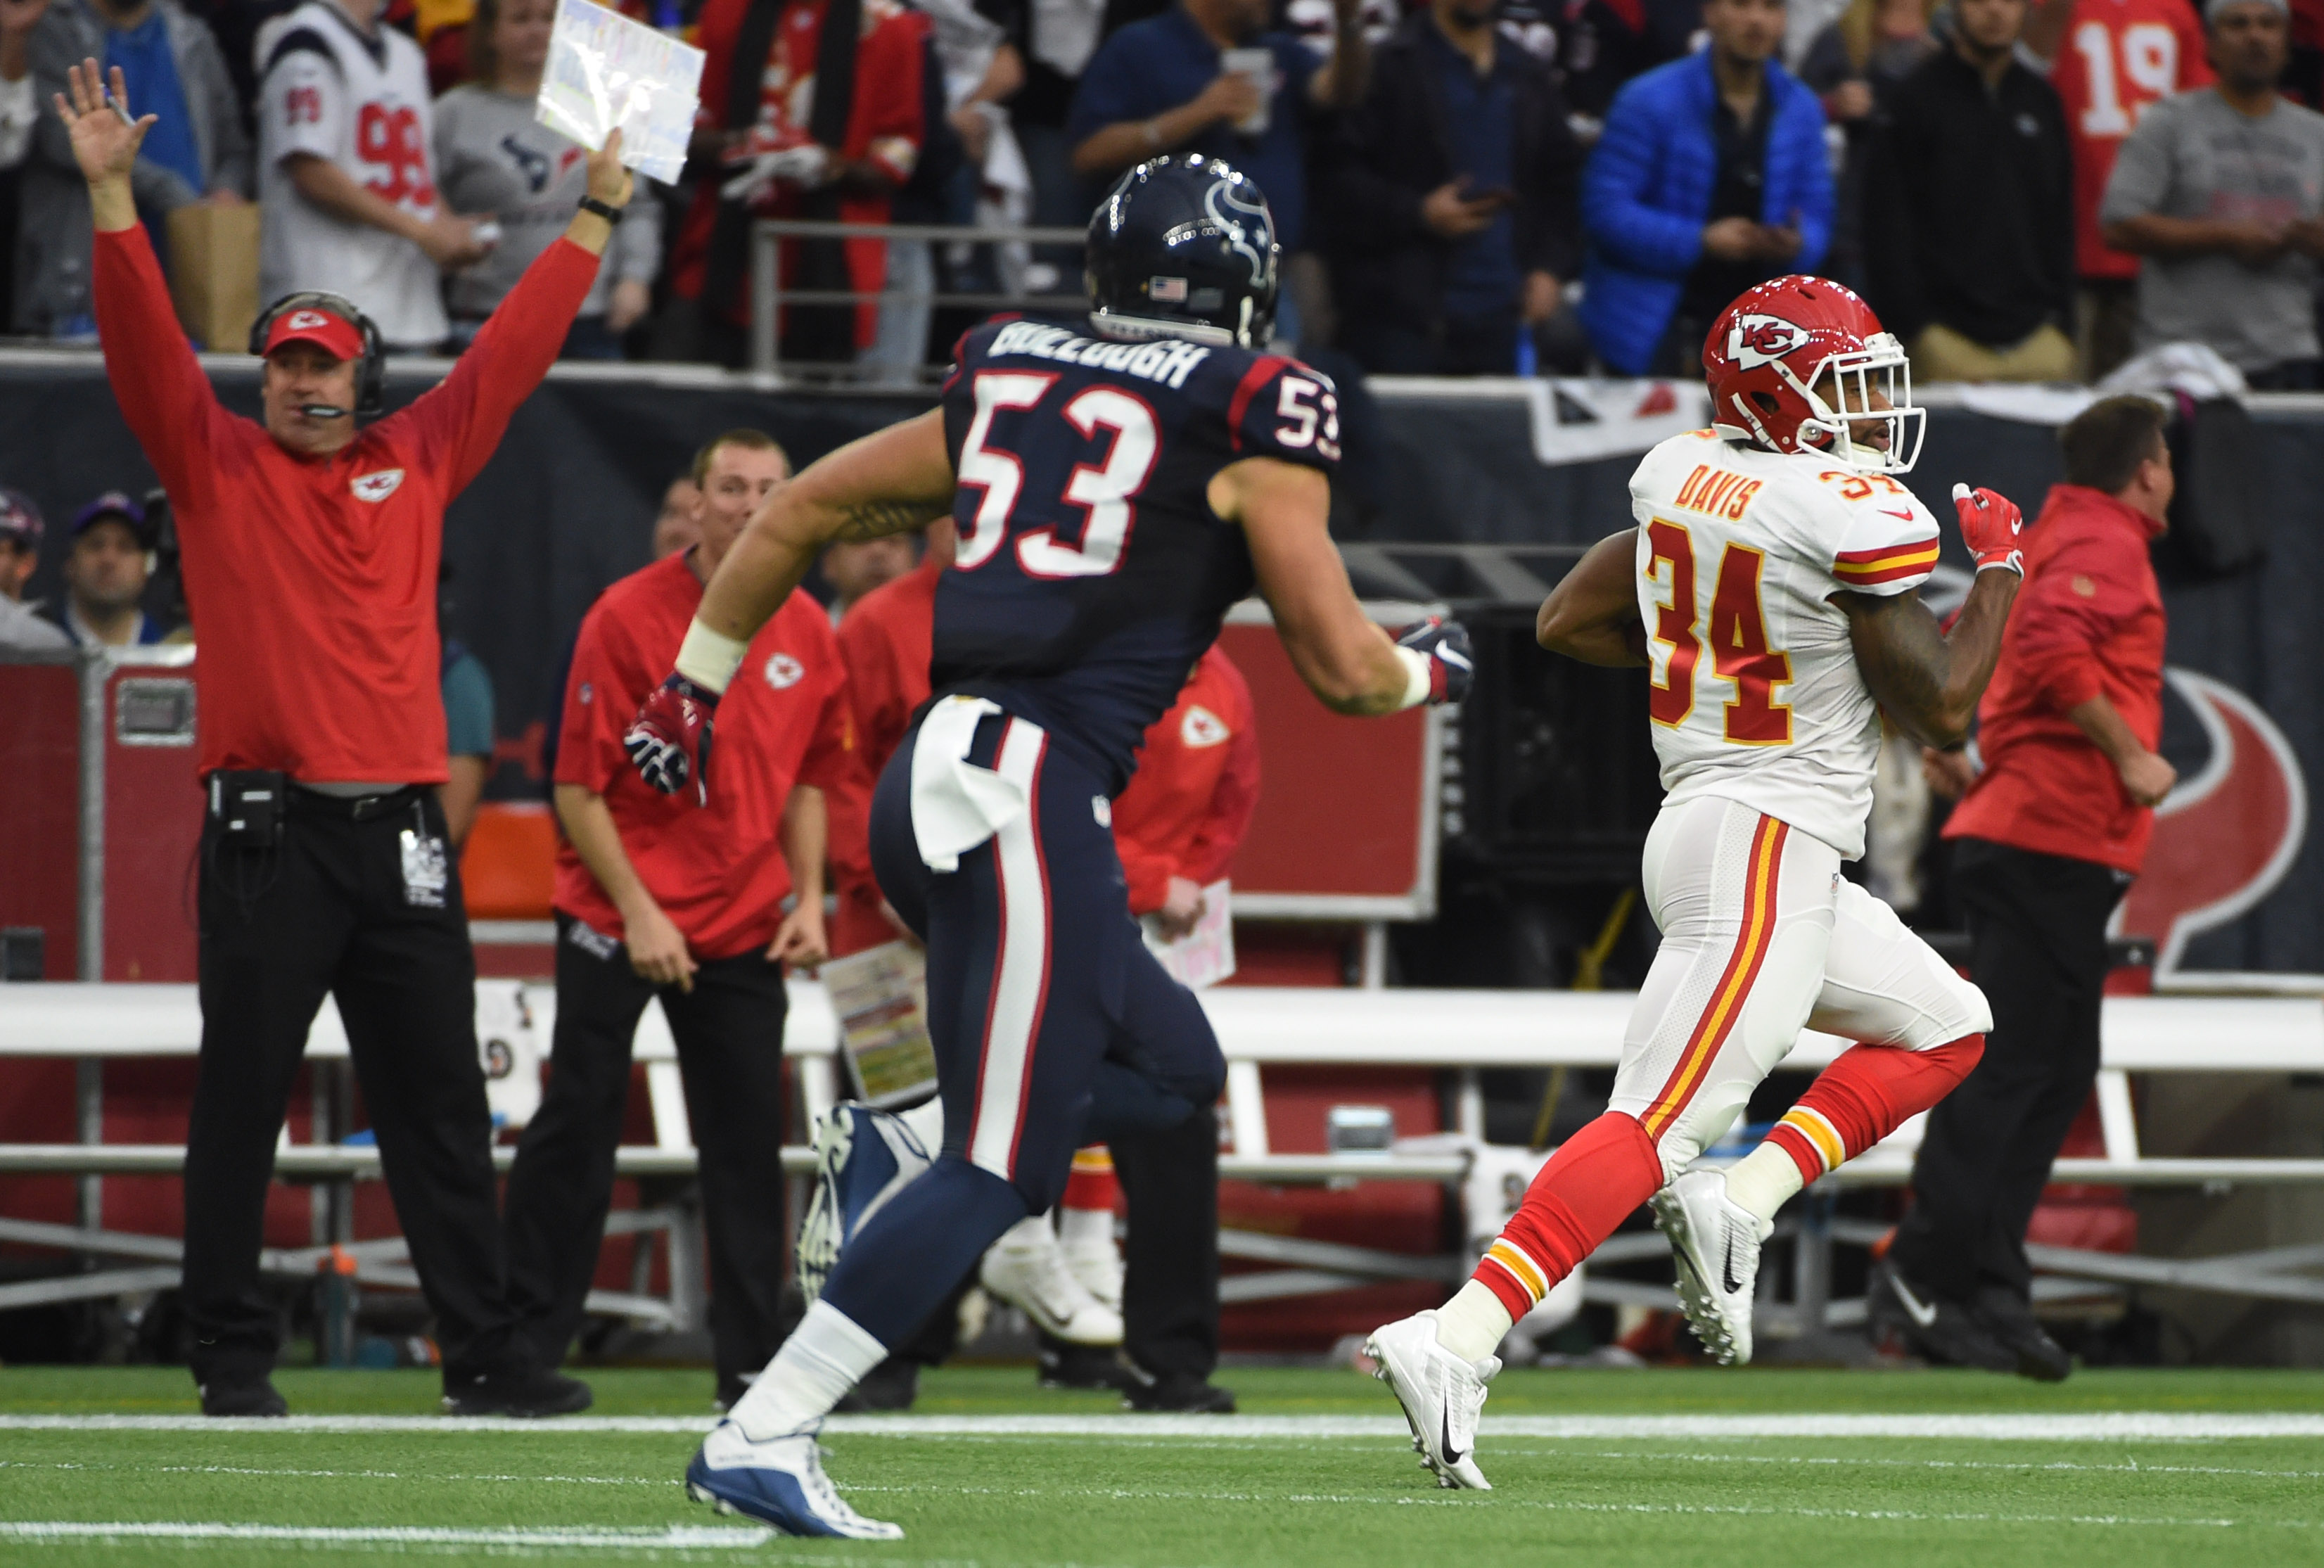 Kansas City Chiefs running back Knile Davis (34) runs for a touchdown as Houston Texans inside linebacker Max Bullough (53) chases him during the first half of an NFL football game Saturday, Jan. 9, 2016, in Houston. (AP Photo/Eric Christian Smith)